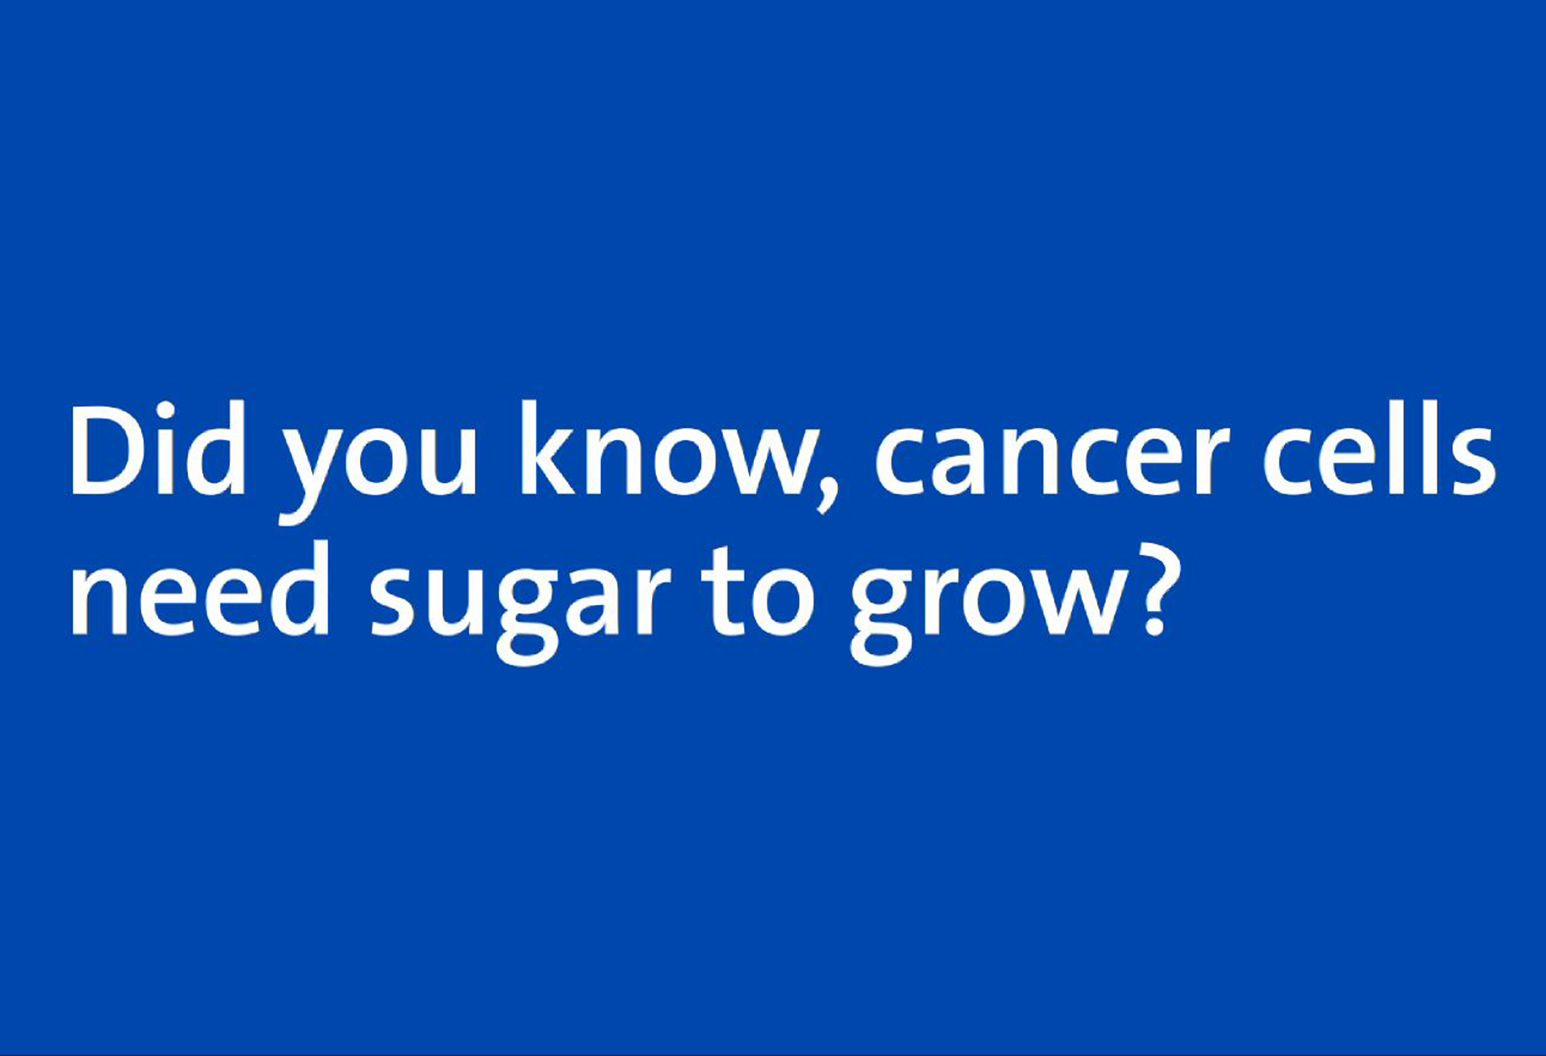 Blue screen with white text that says 'did you know, cancer cells need sugar to grow?'